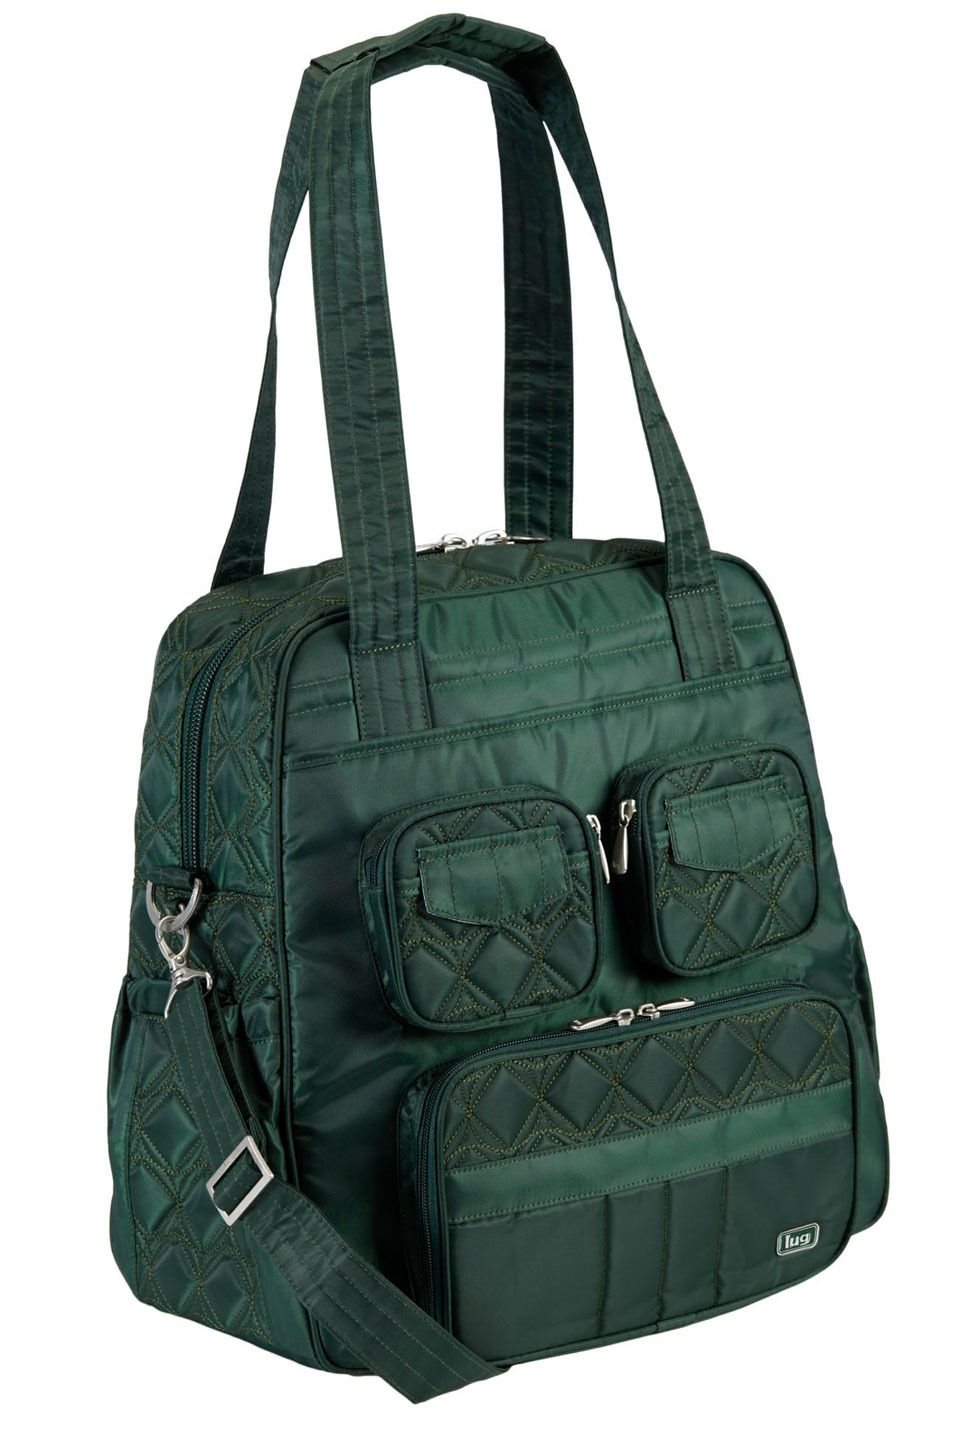 Puddle Jumper Deluxe Bag By Lug Diaper Bags Travel